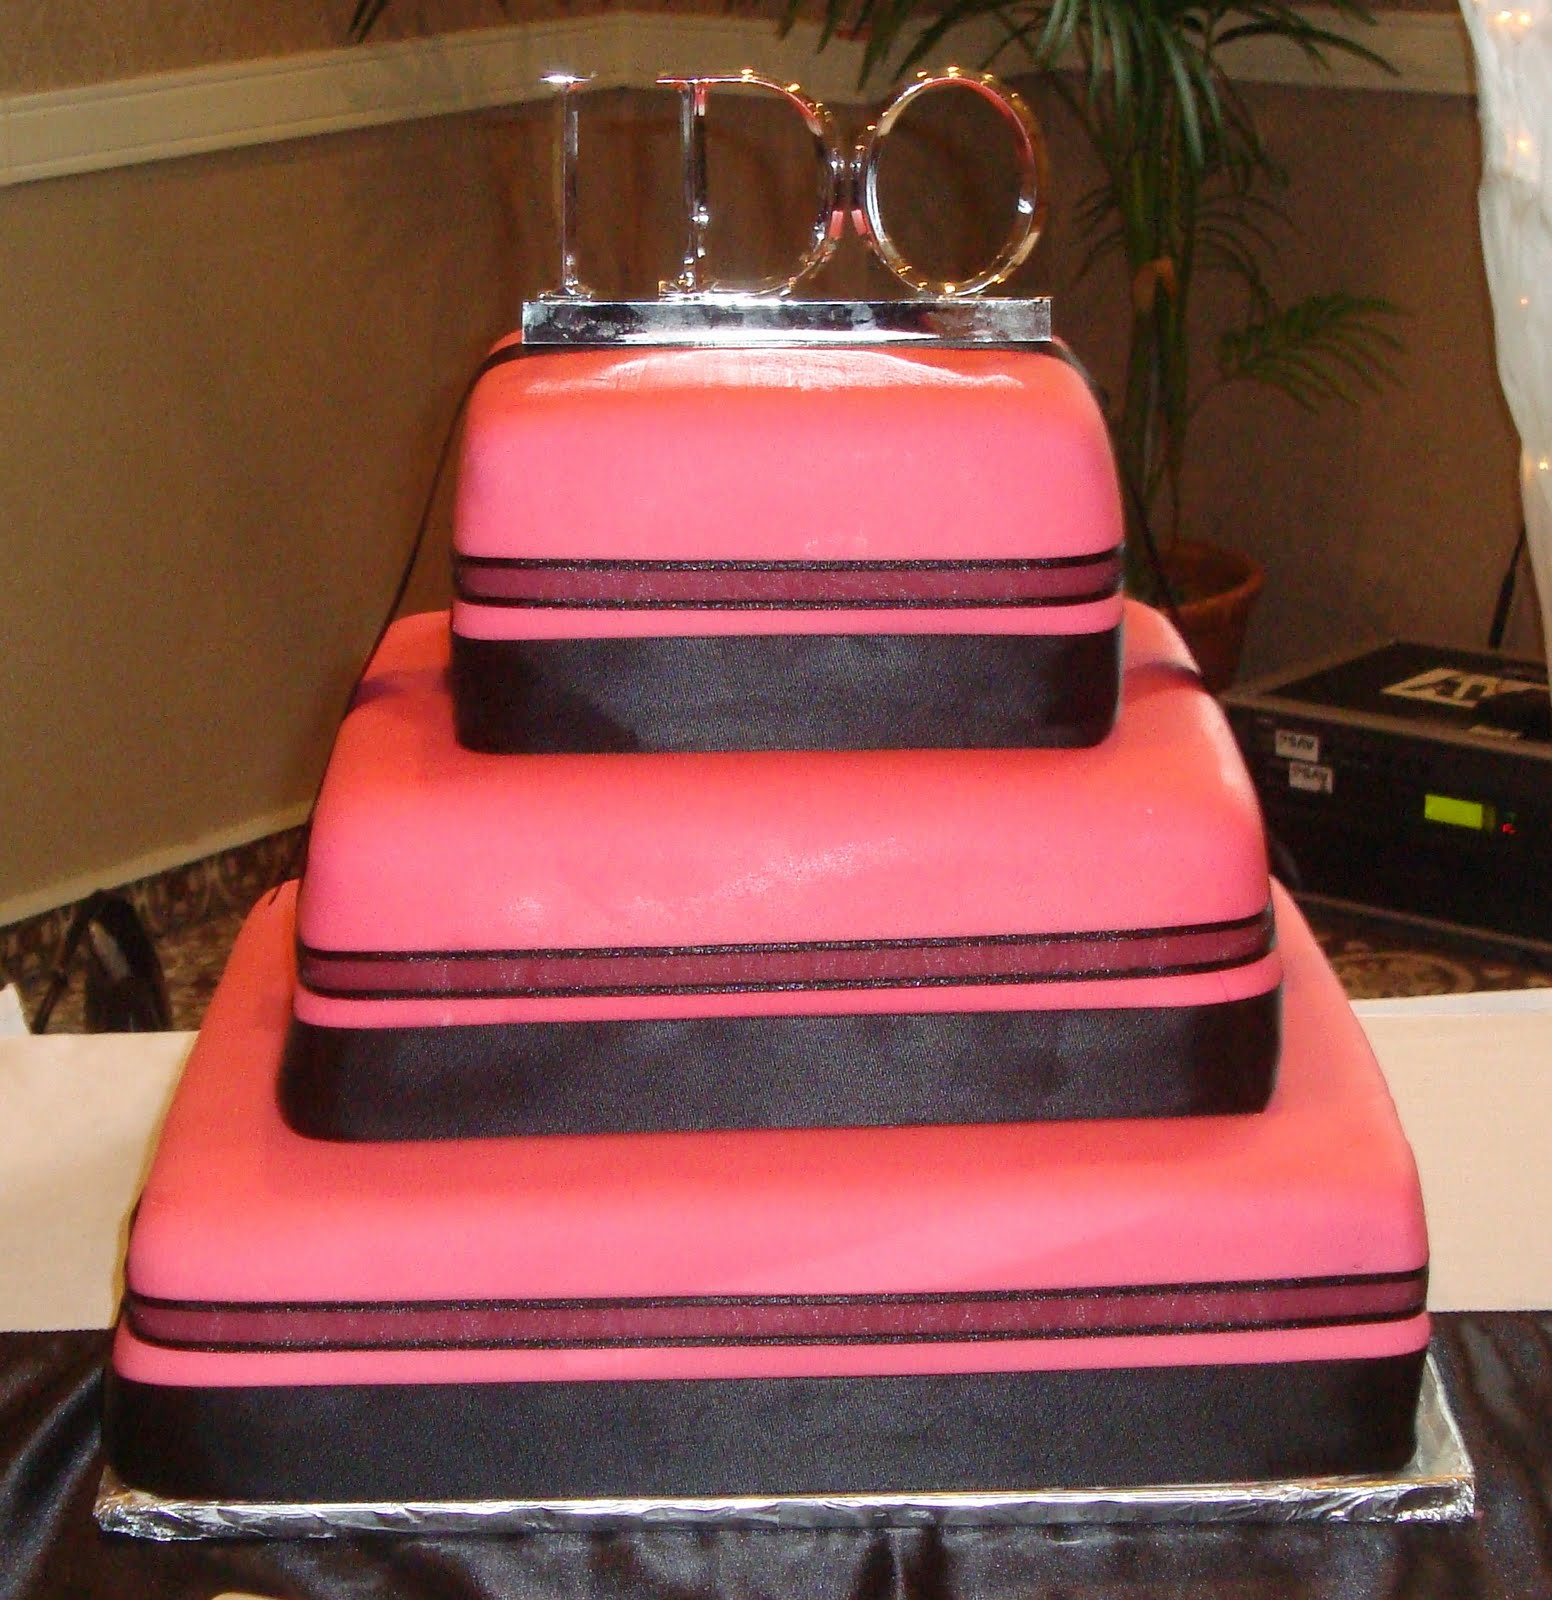 Cakes By Alissa Pink and Black Square Wedding Cake August